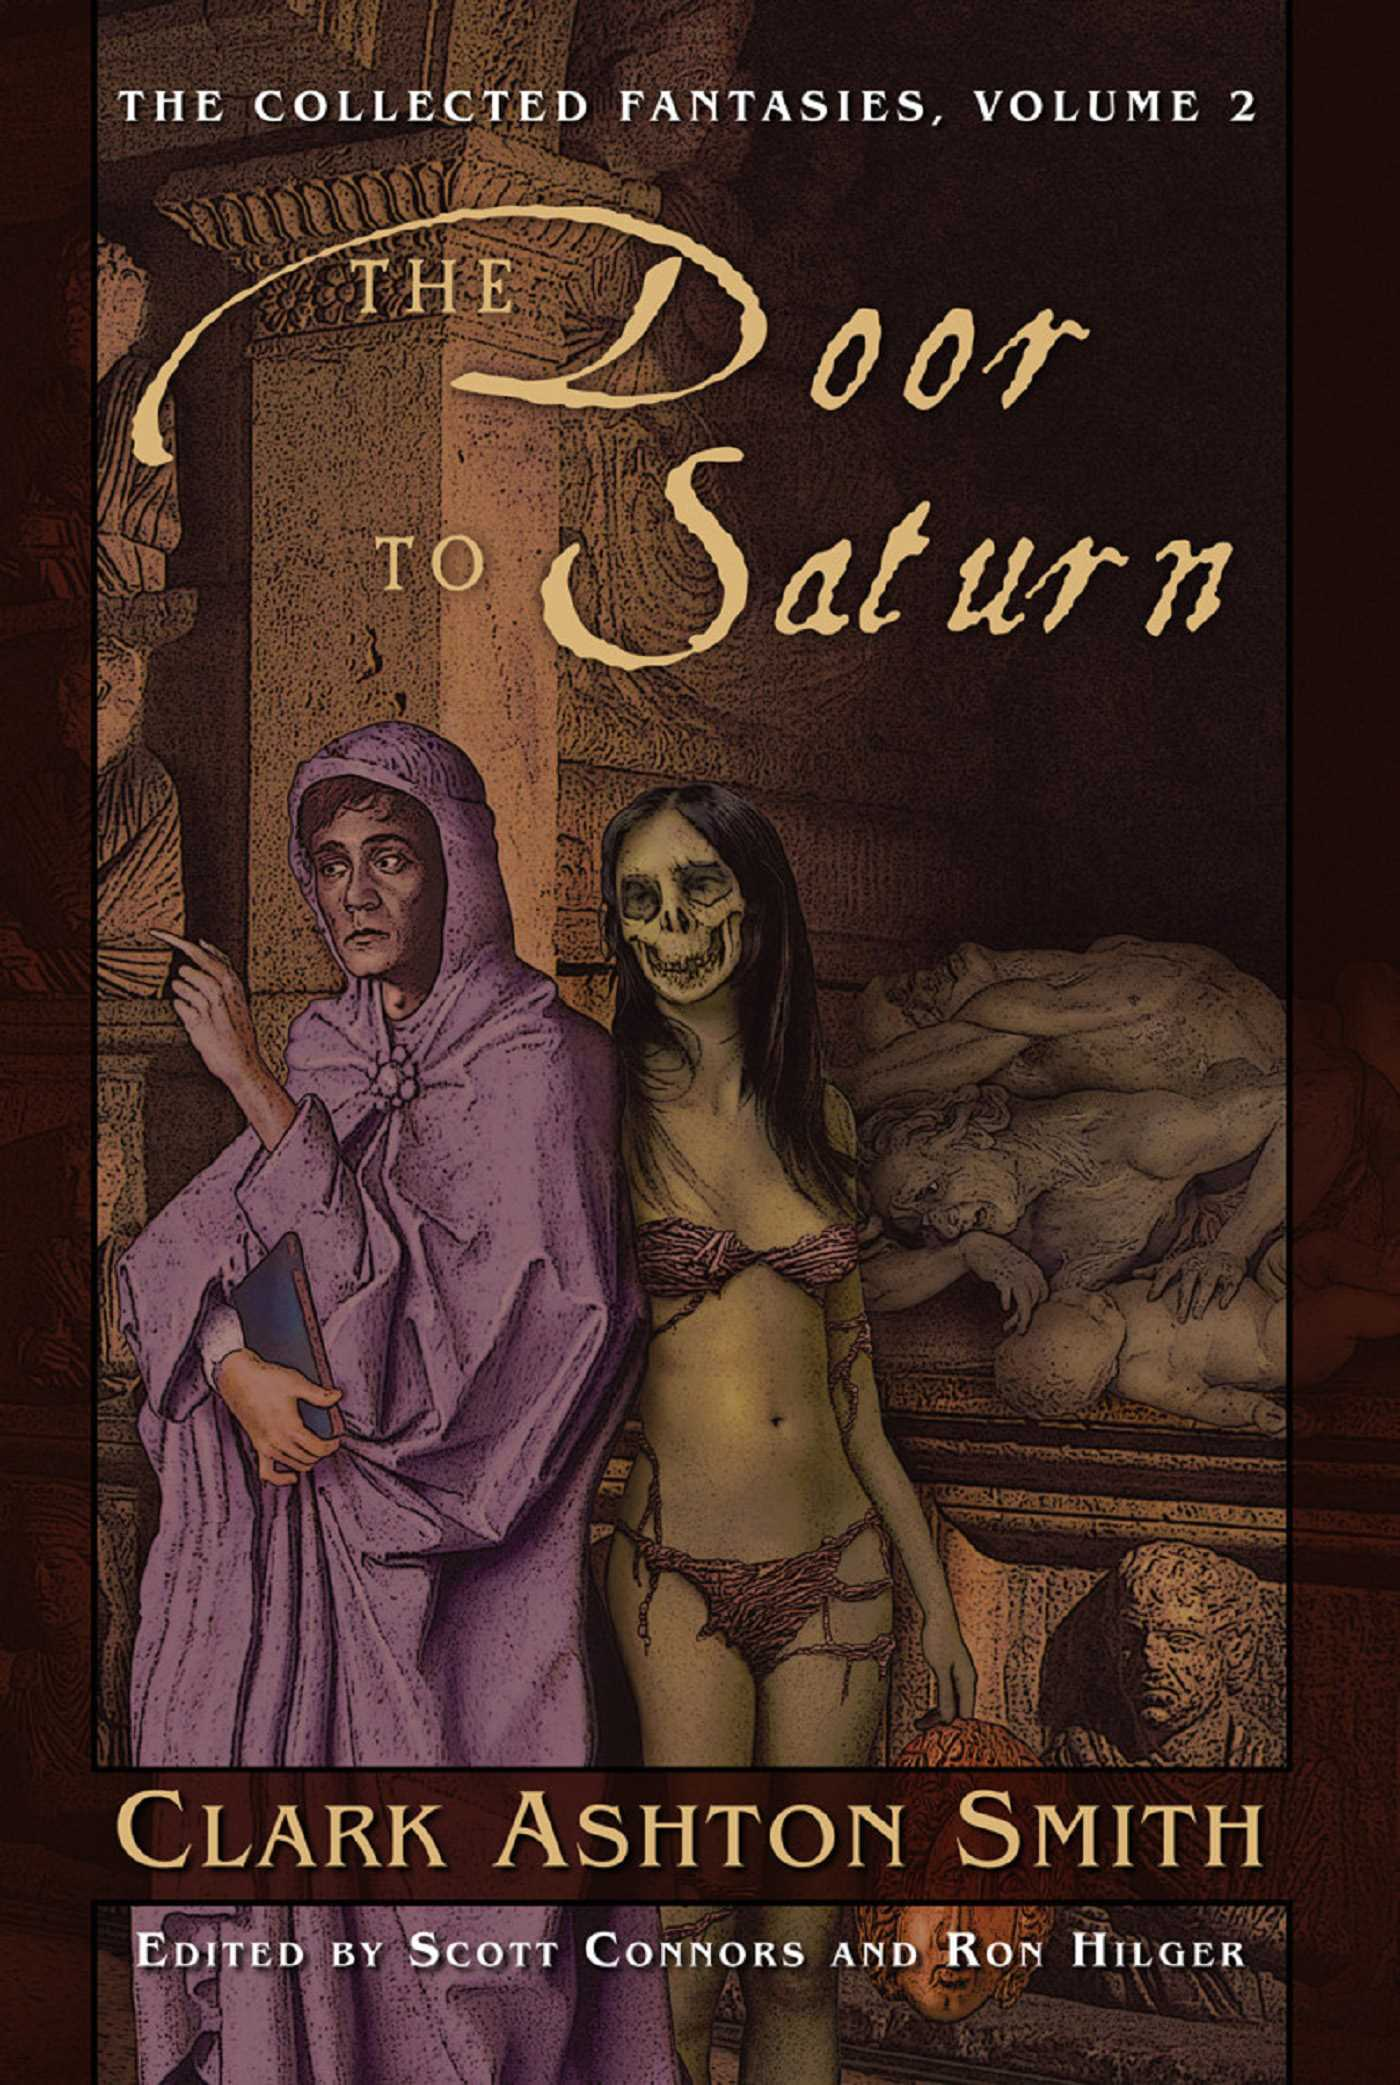 Collected Fantasies of Clark Ashton Smith: The Door To Saturn